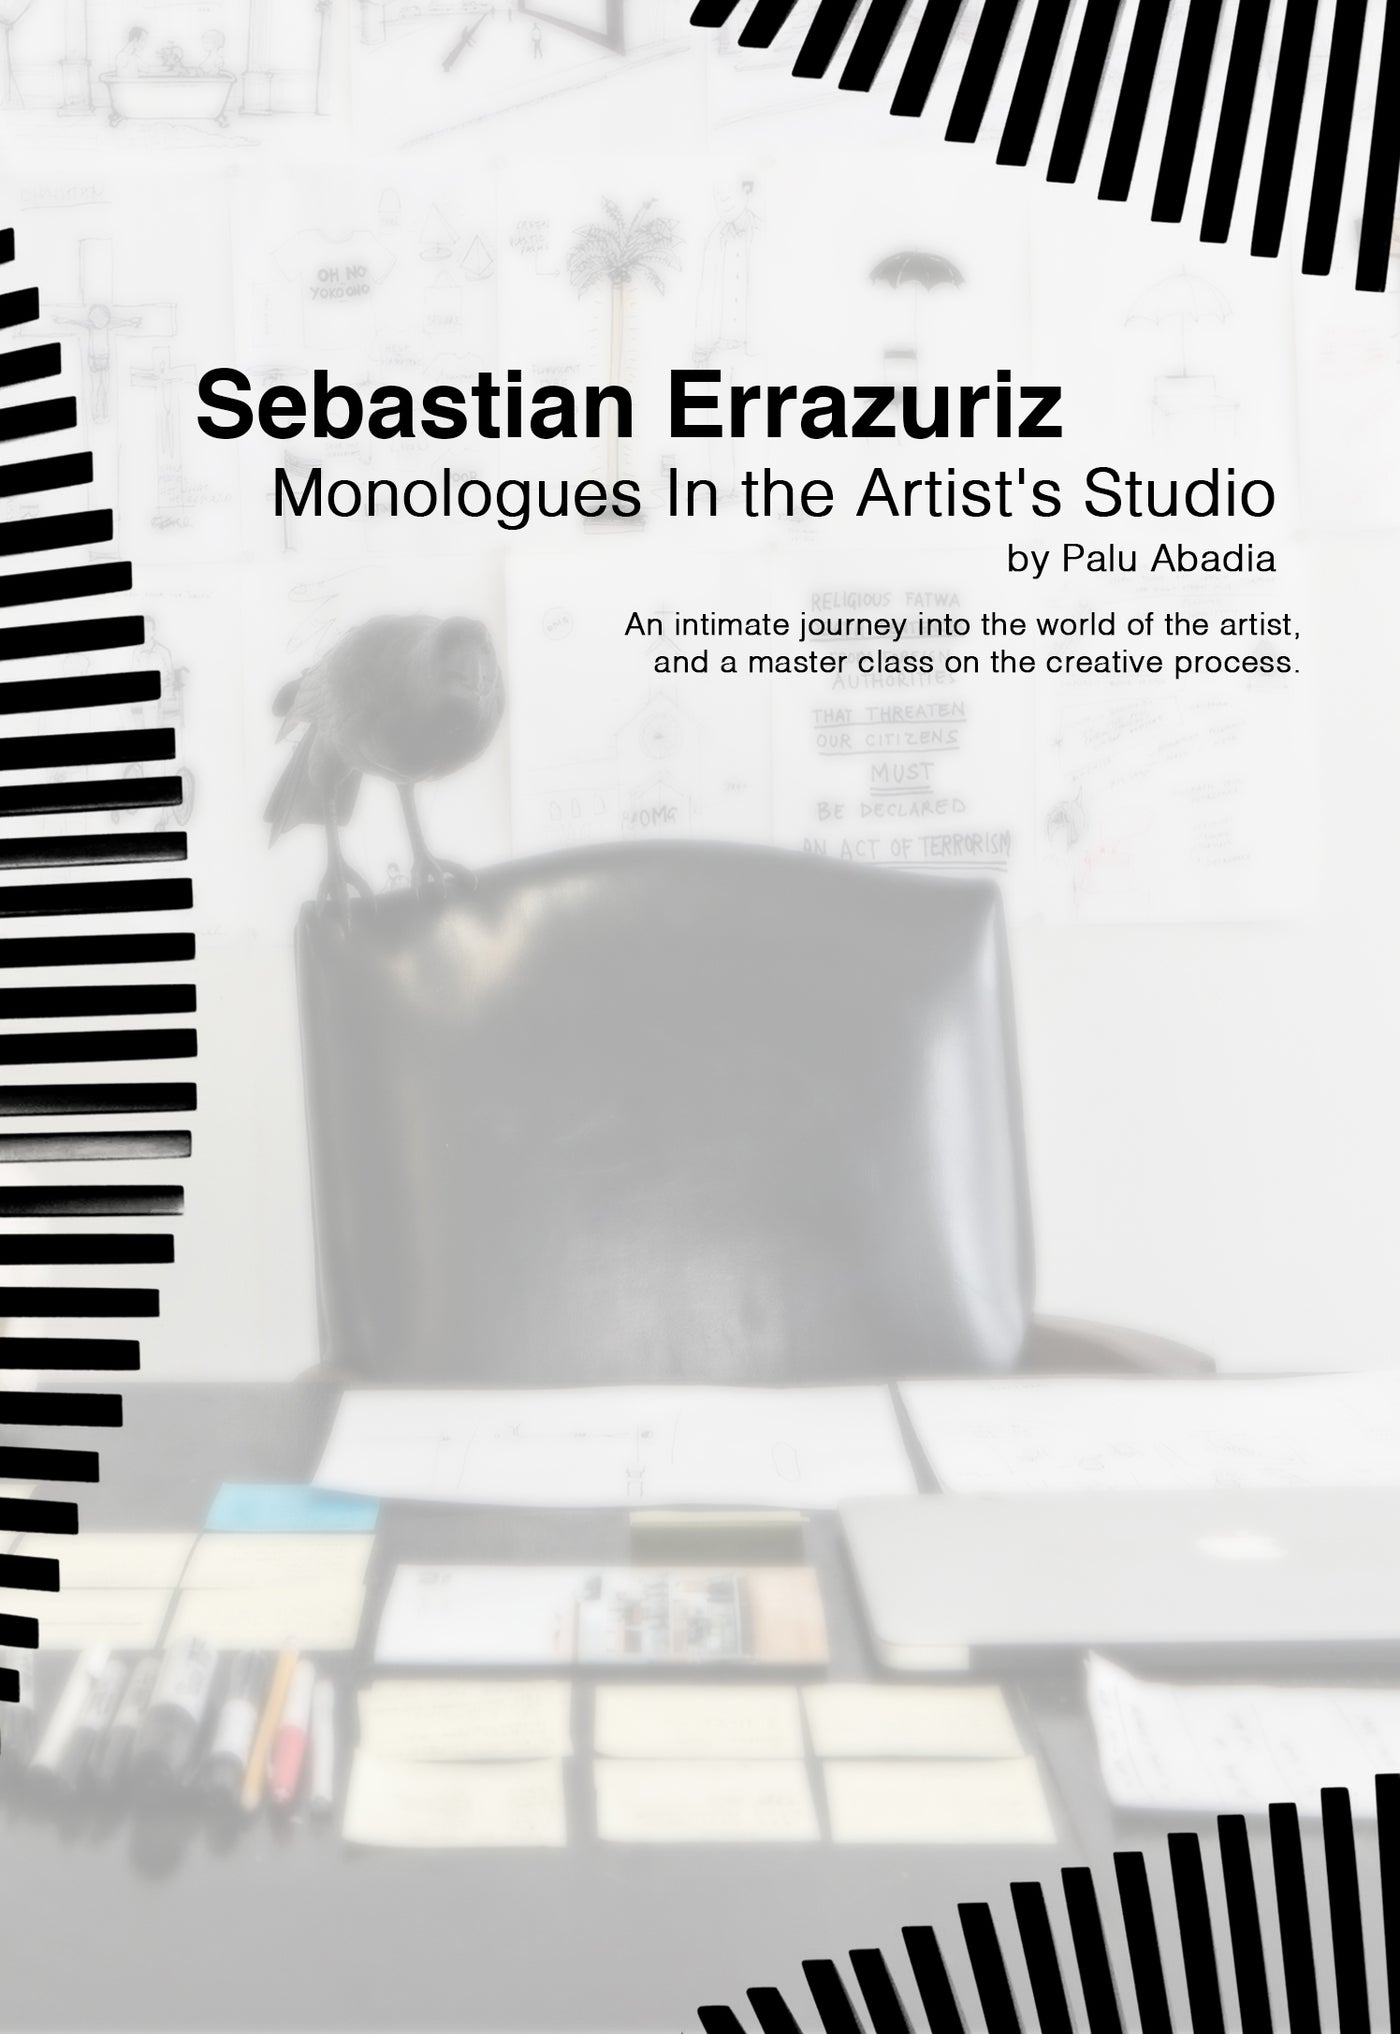 Monologues in the Artist's Studio